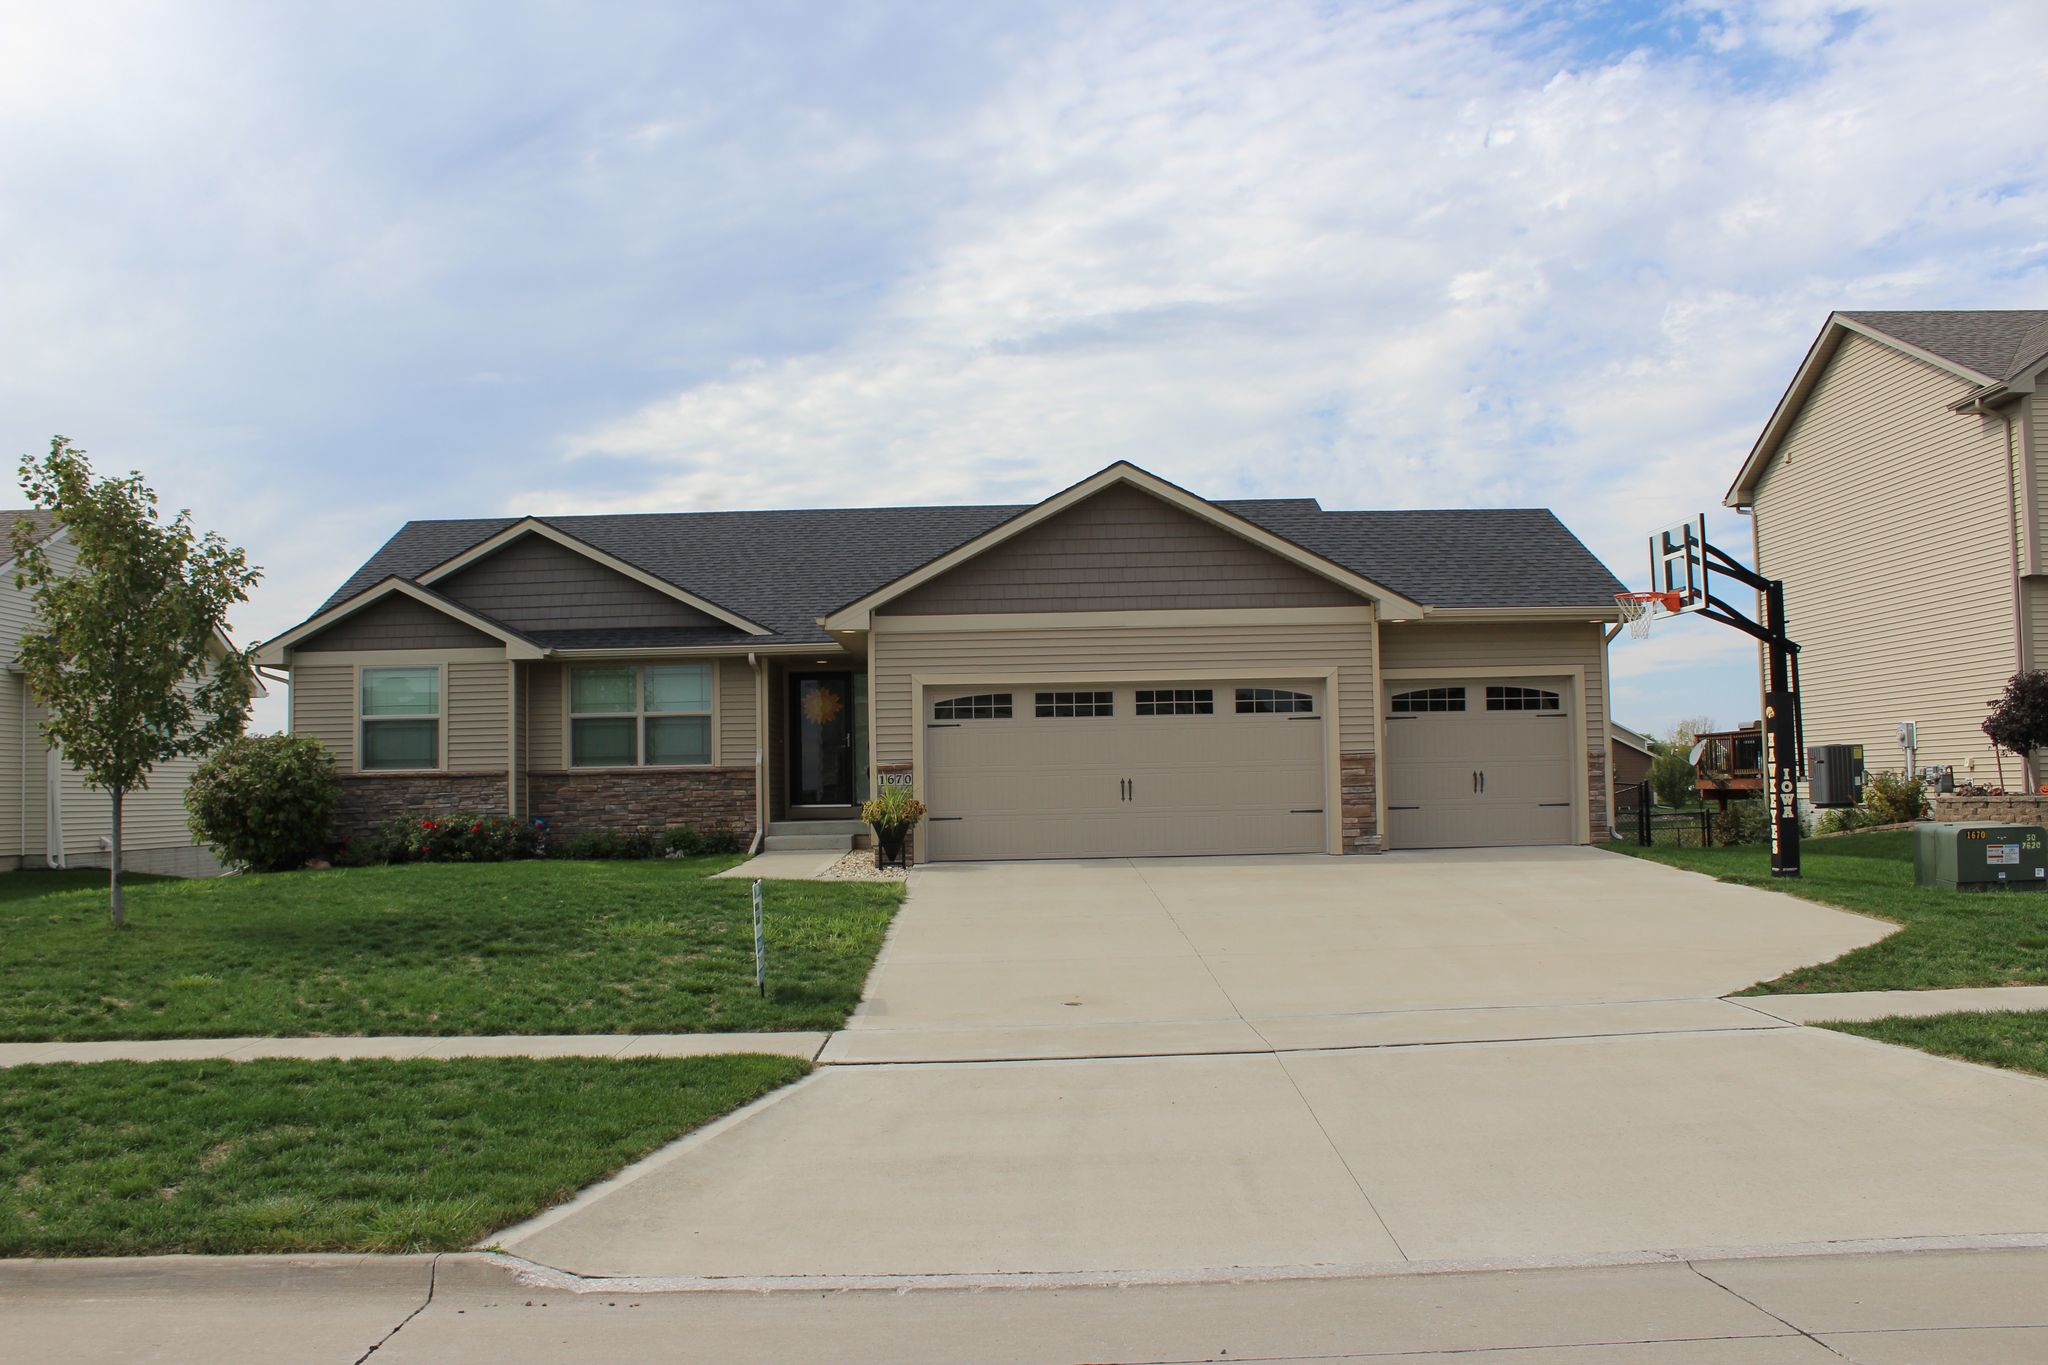 1670 se waters edge dr for sale waukee ia trulia